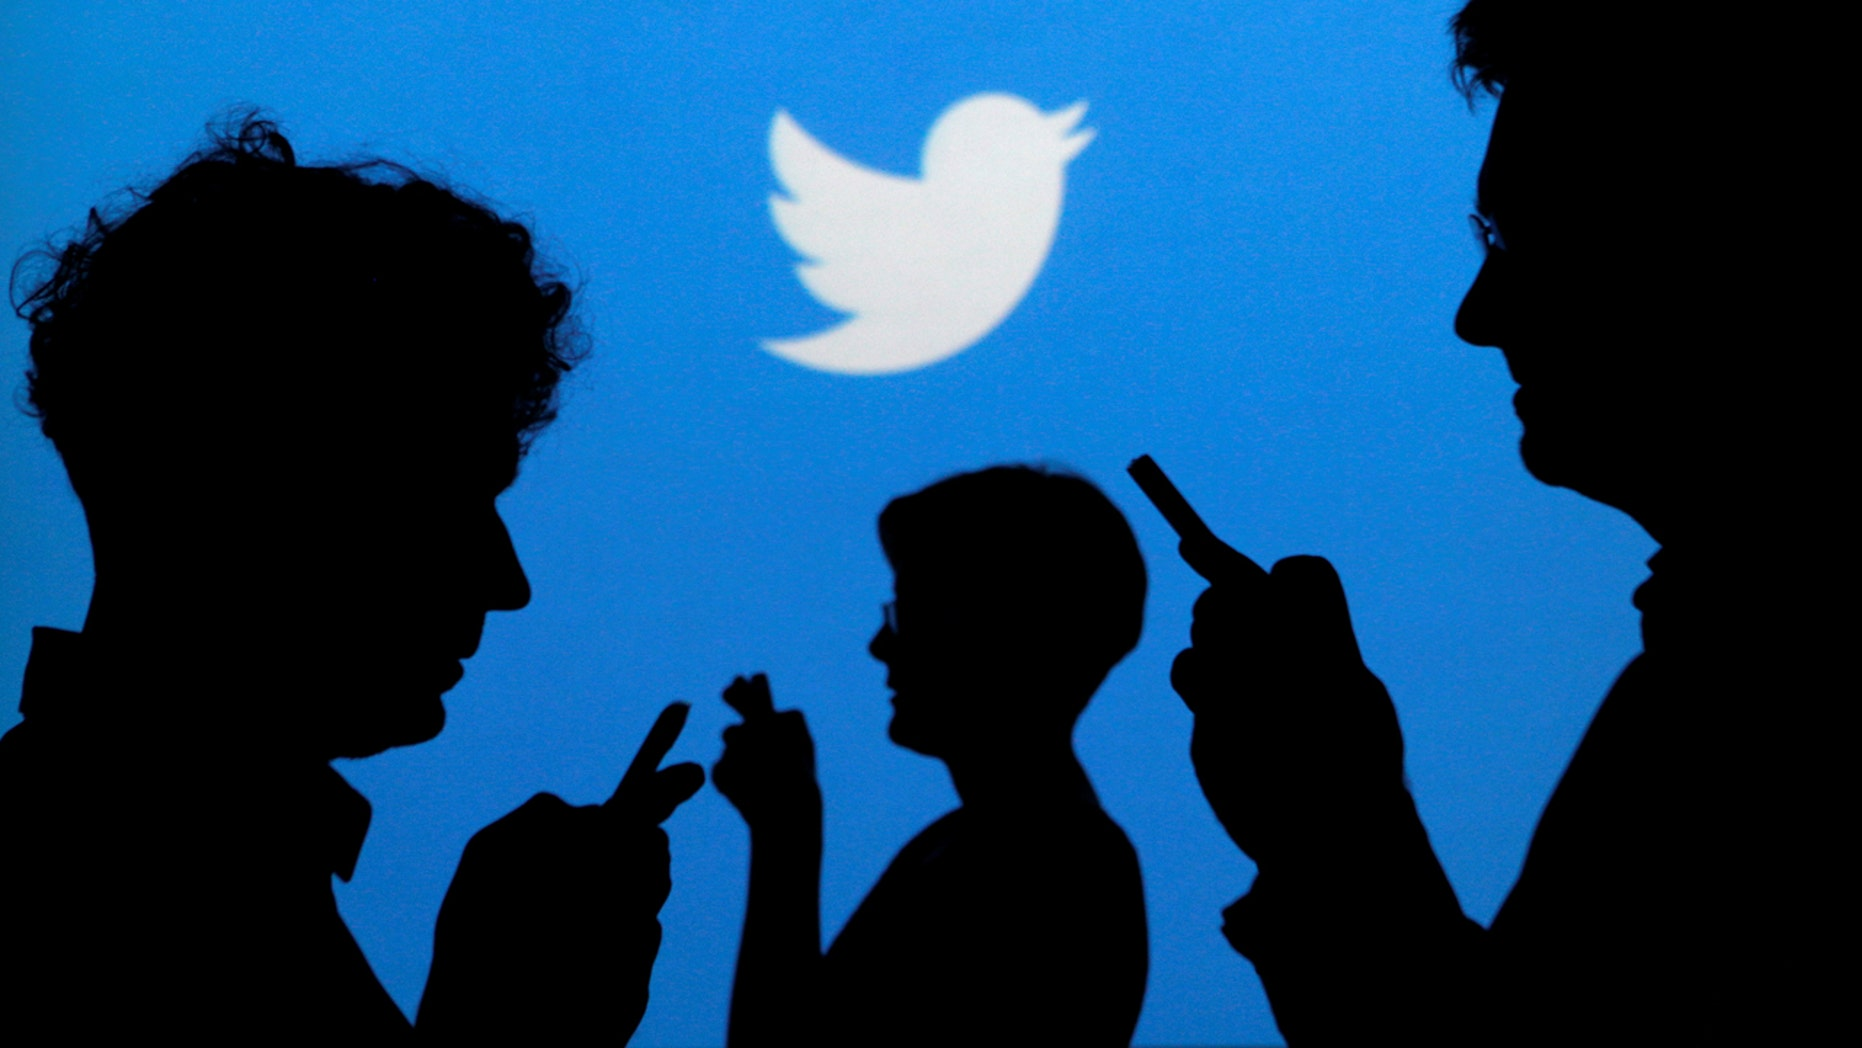 FILE PHOTO -- People holding mobile phones are silhouetted against a backdrop projected with the Twitter logo in this illustration picture taken in Warsaw Sept. 27, 2013. (REUTERS/Kacper Pempel/Illustration/File Photo)